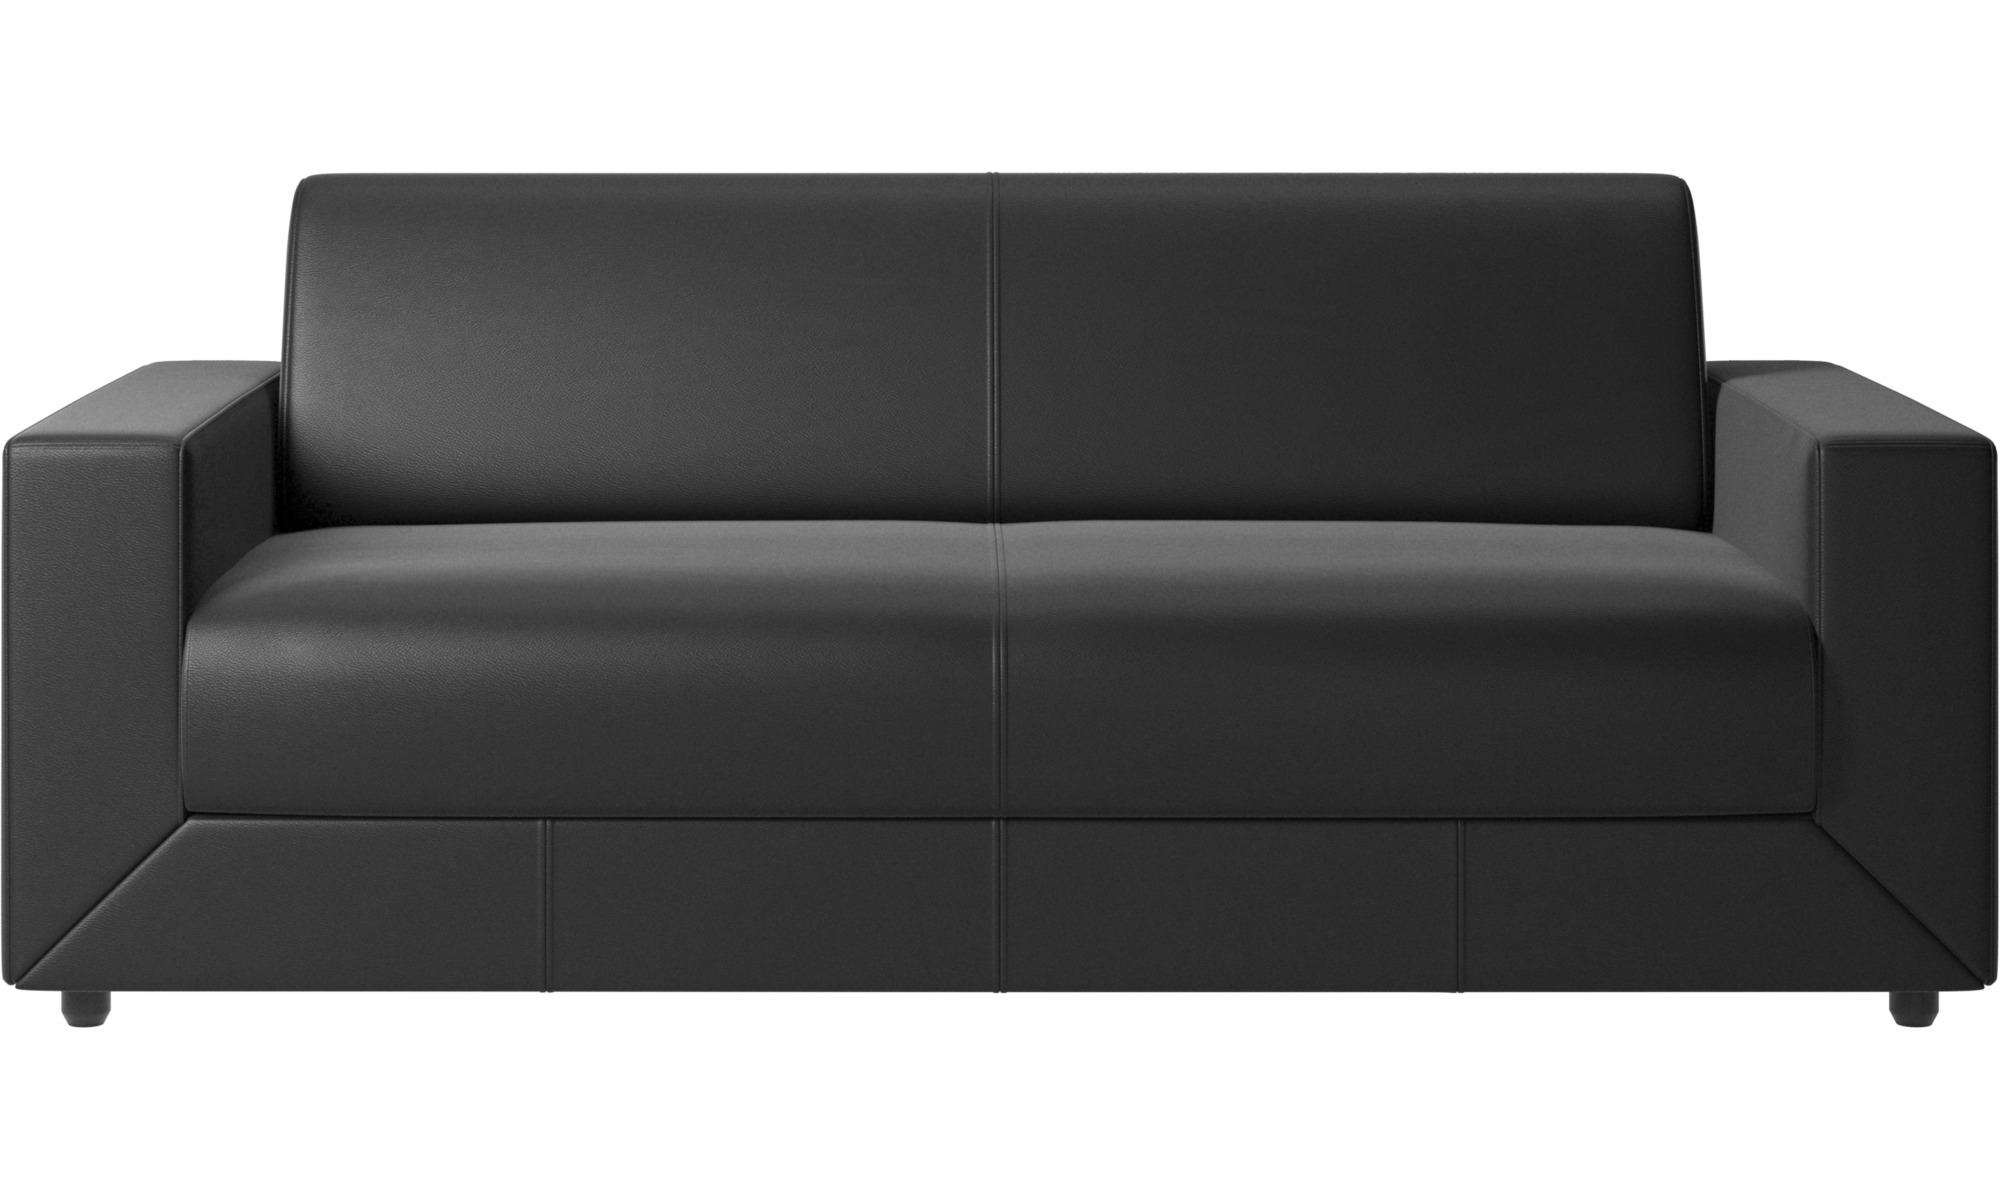 Boconcept sofa bed instructions refil sofa for Canape bo concept